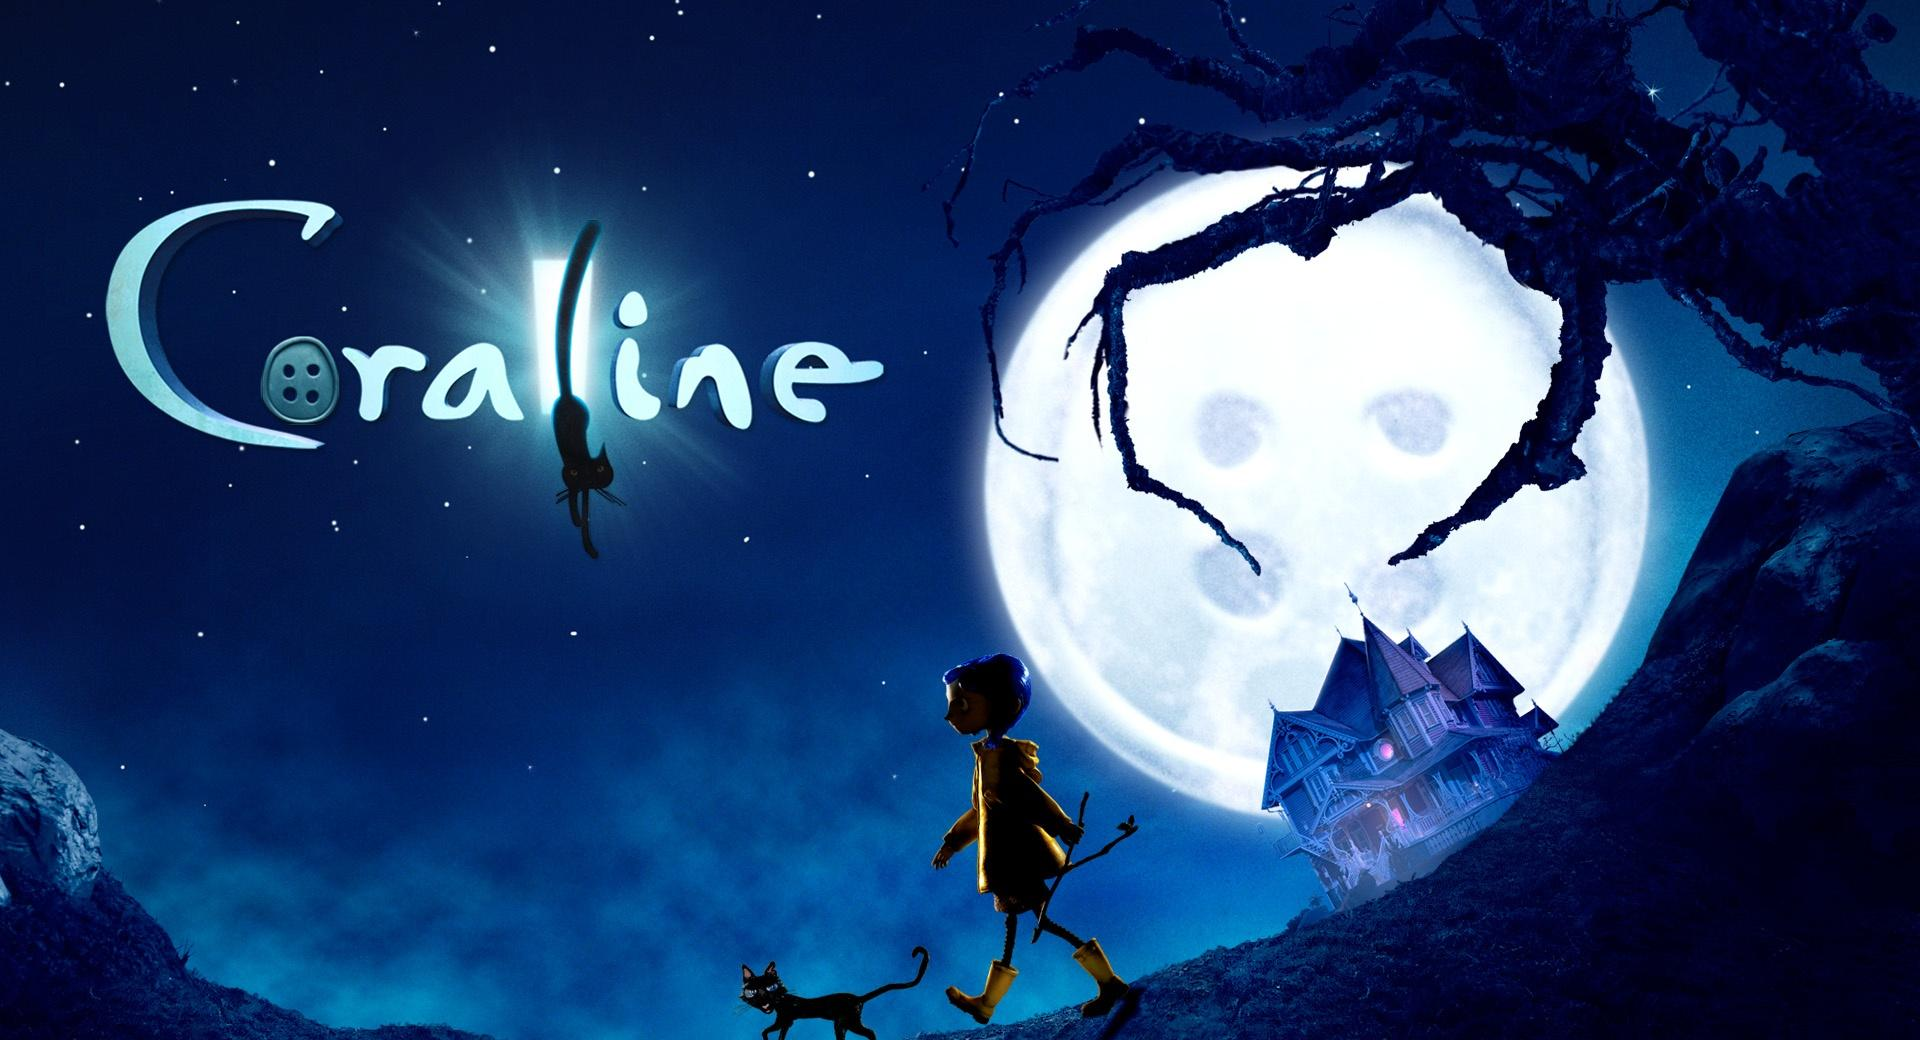 Coraline Movie wallpapers HD quality